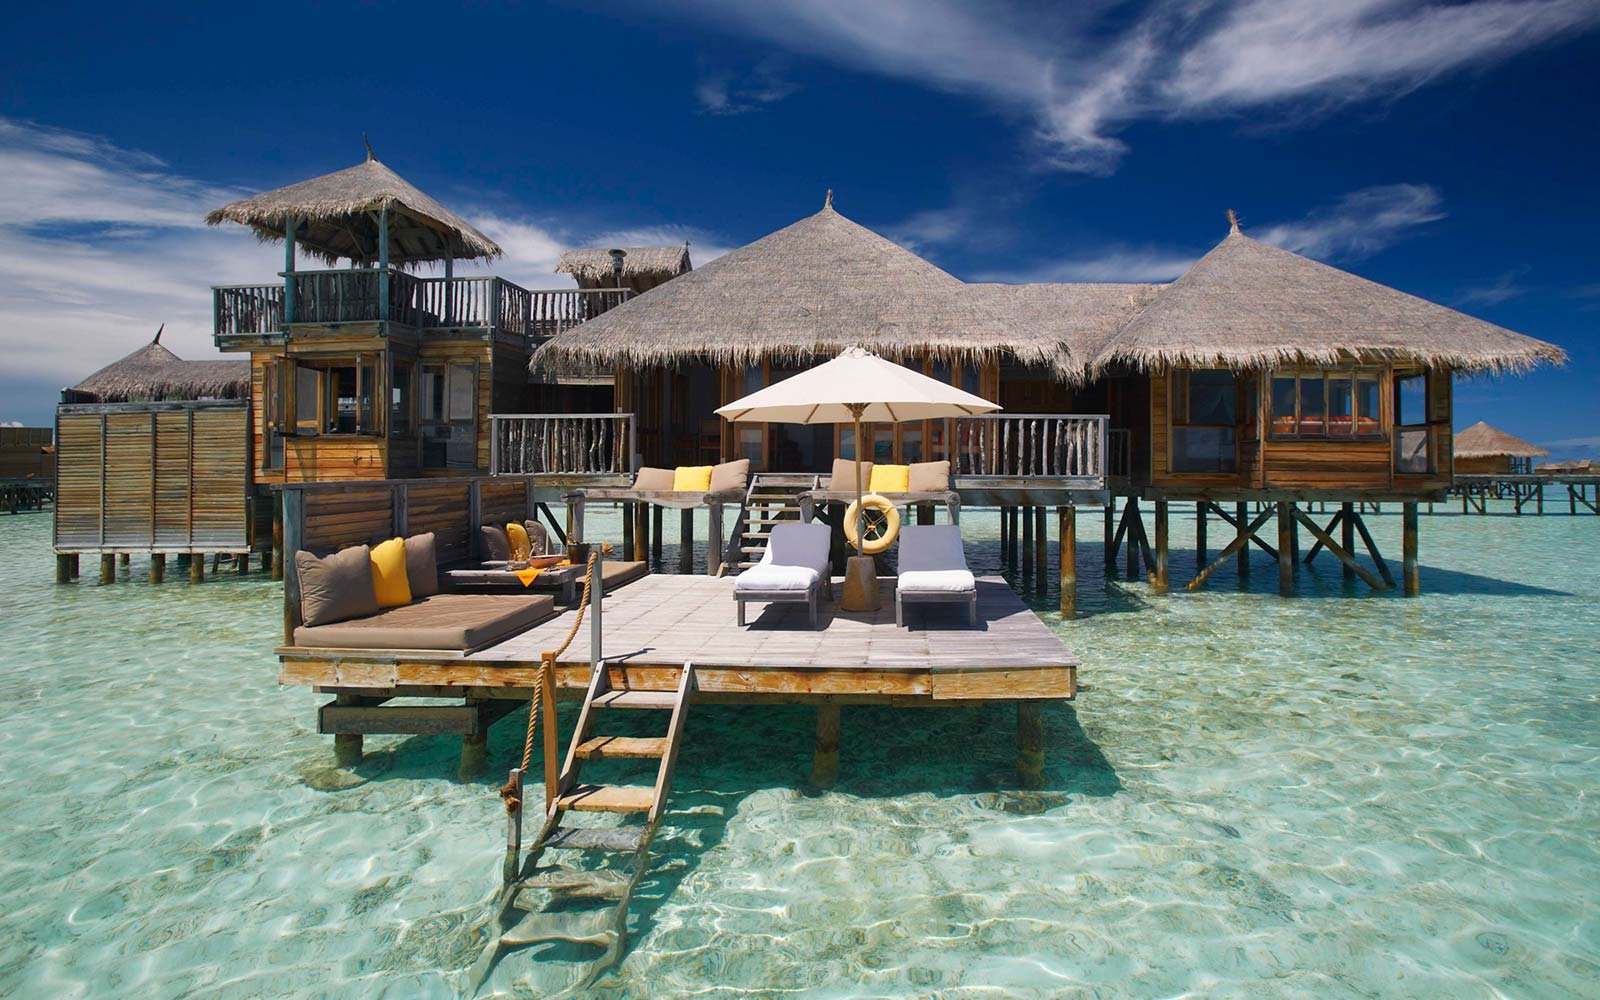 Gili Lankanfushi Island Maldives Resort Floating Hotel